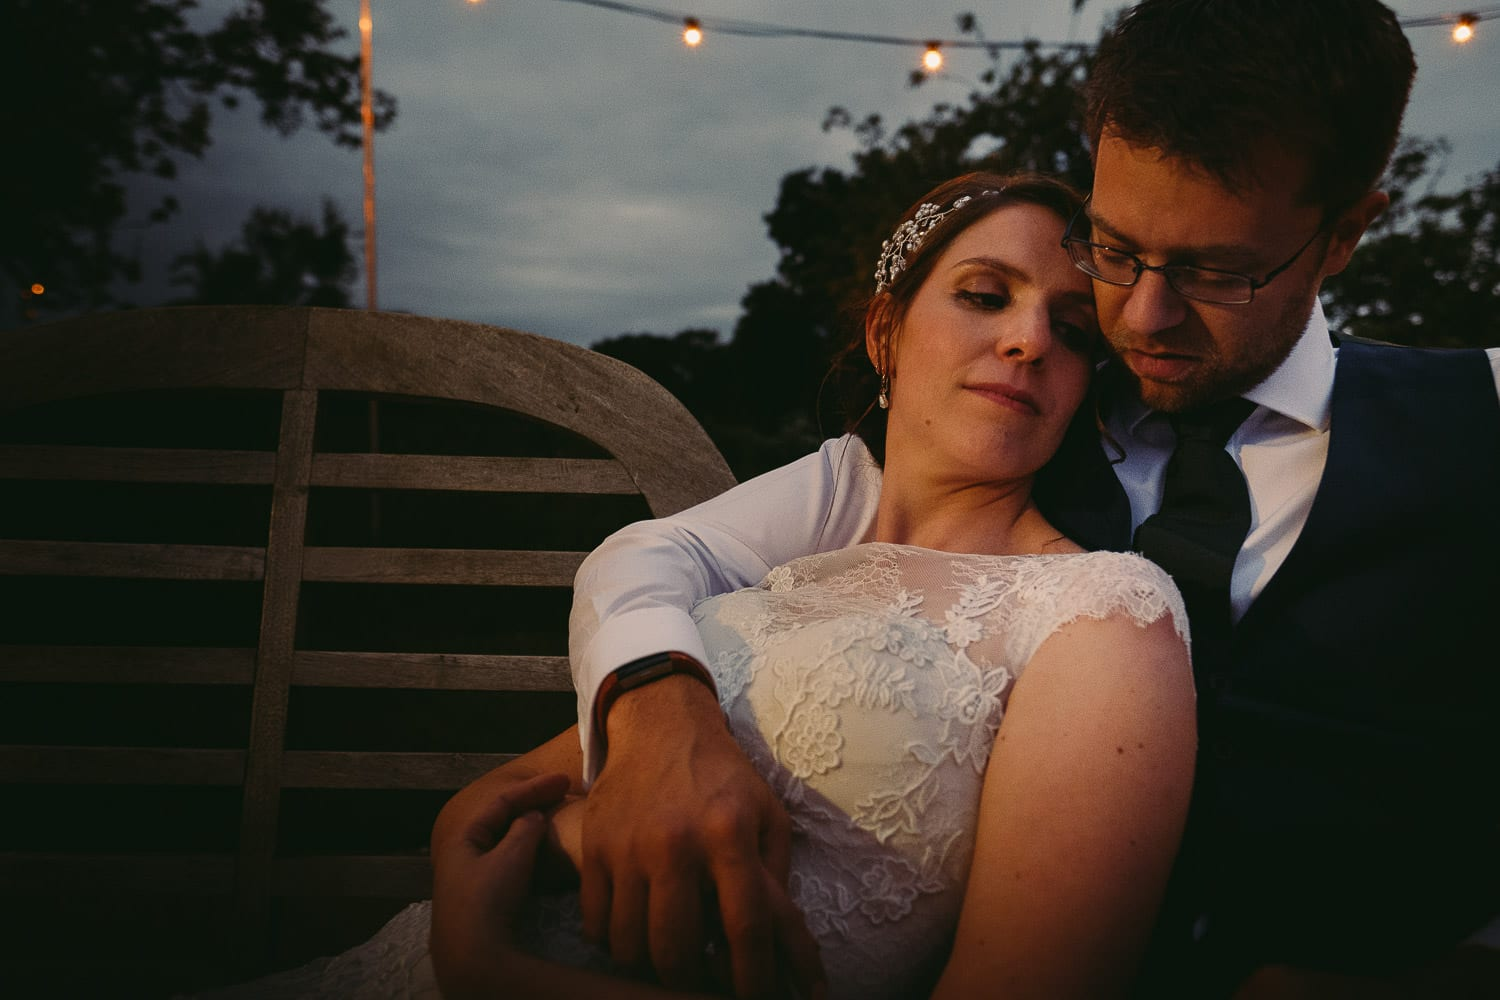 The bride and groom sat on a bench in the evening